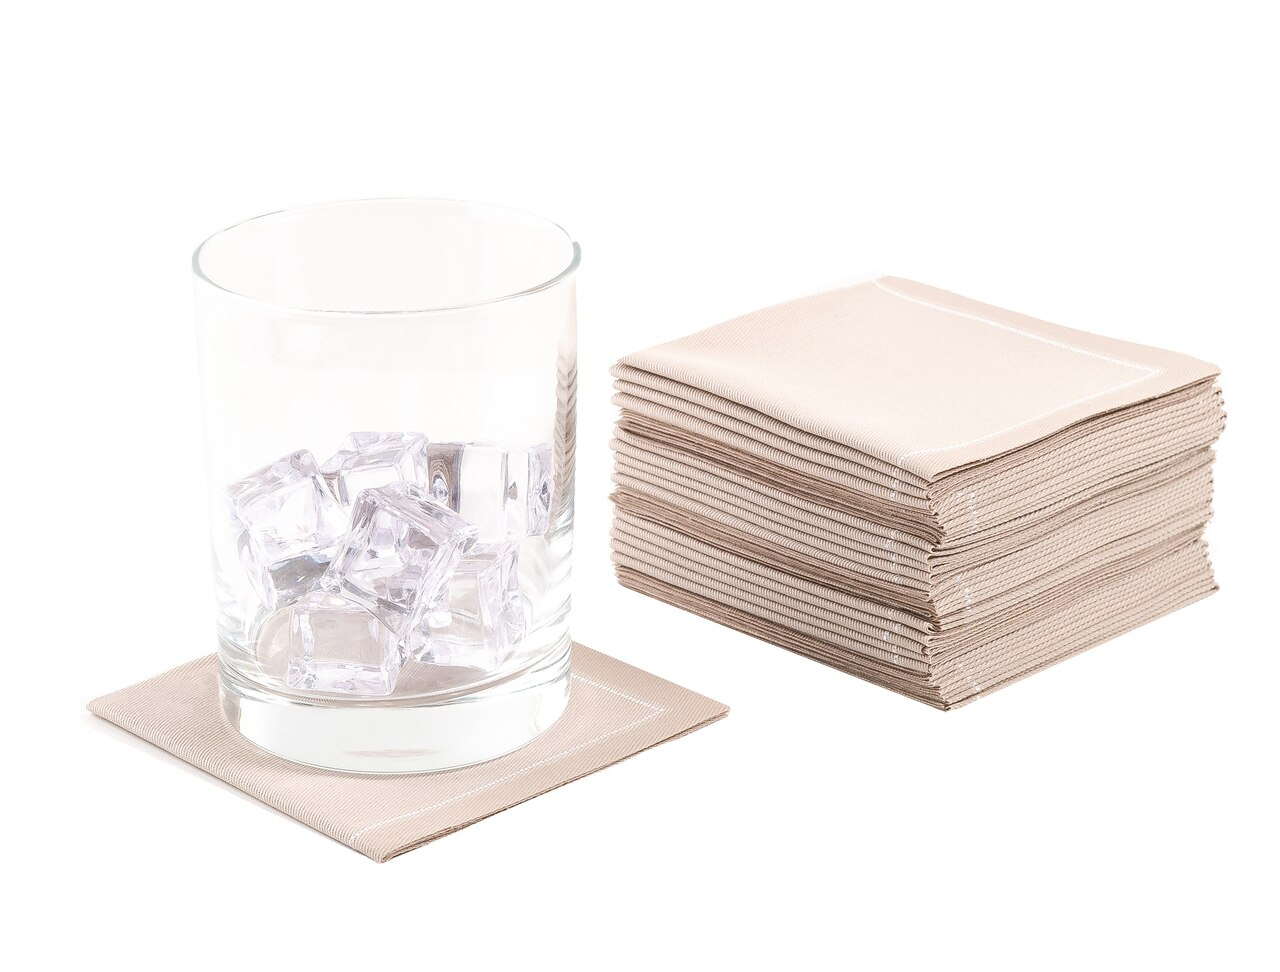 "Sand Cotton 1/4 Fold Cocktail (200 GSM) - 8"" x 8"" (folded 4"" x 4"") - 600 units"